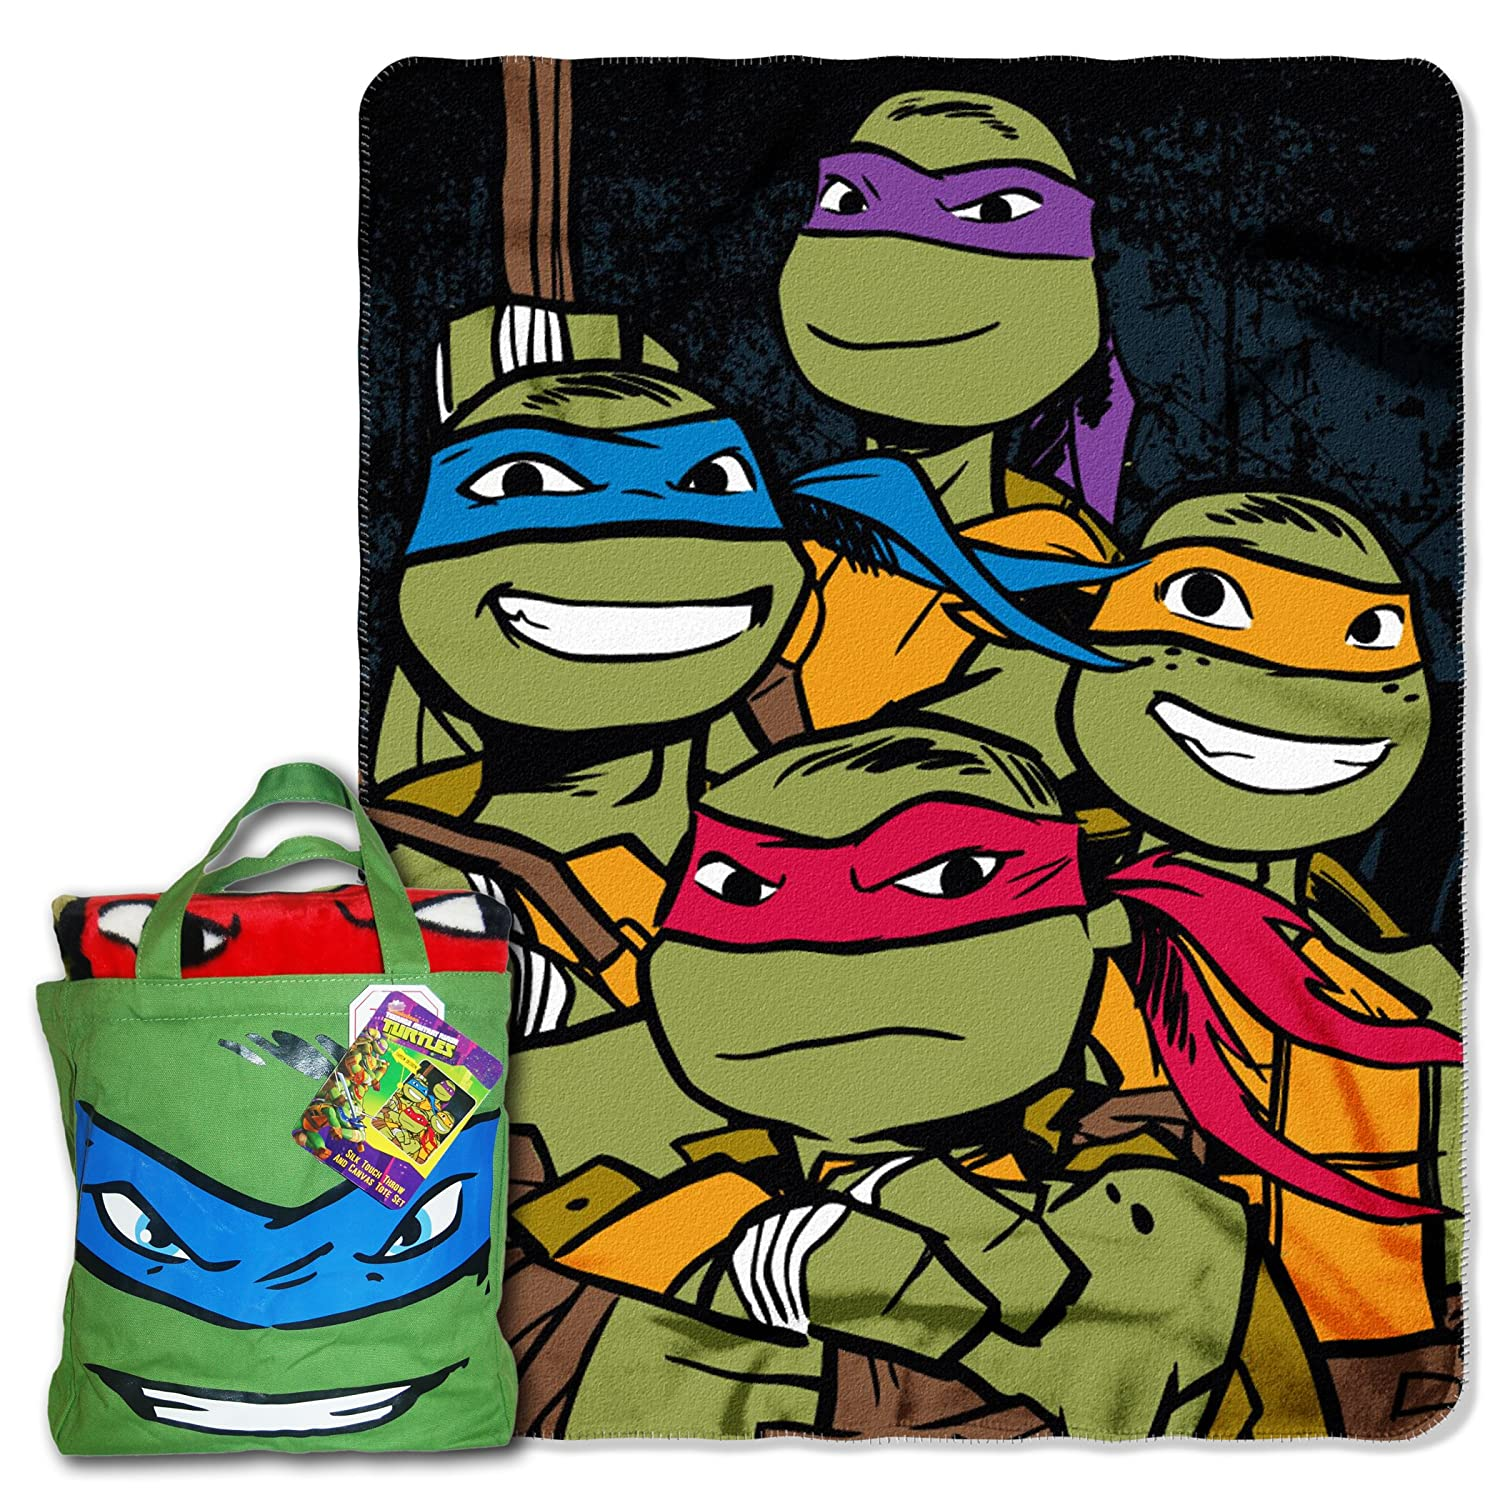 """Nickelodeon's Teenage Mutant Ninja Turtles, """"Turtle Fighters"""" Silk Touch Throw with Reusable Canvas Tote Set, Multi Color"""